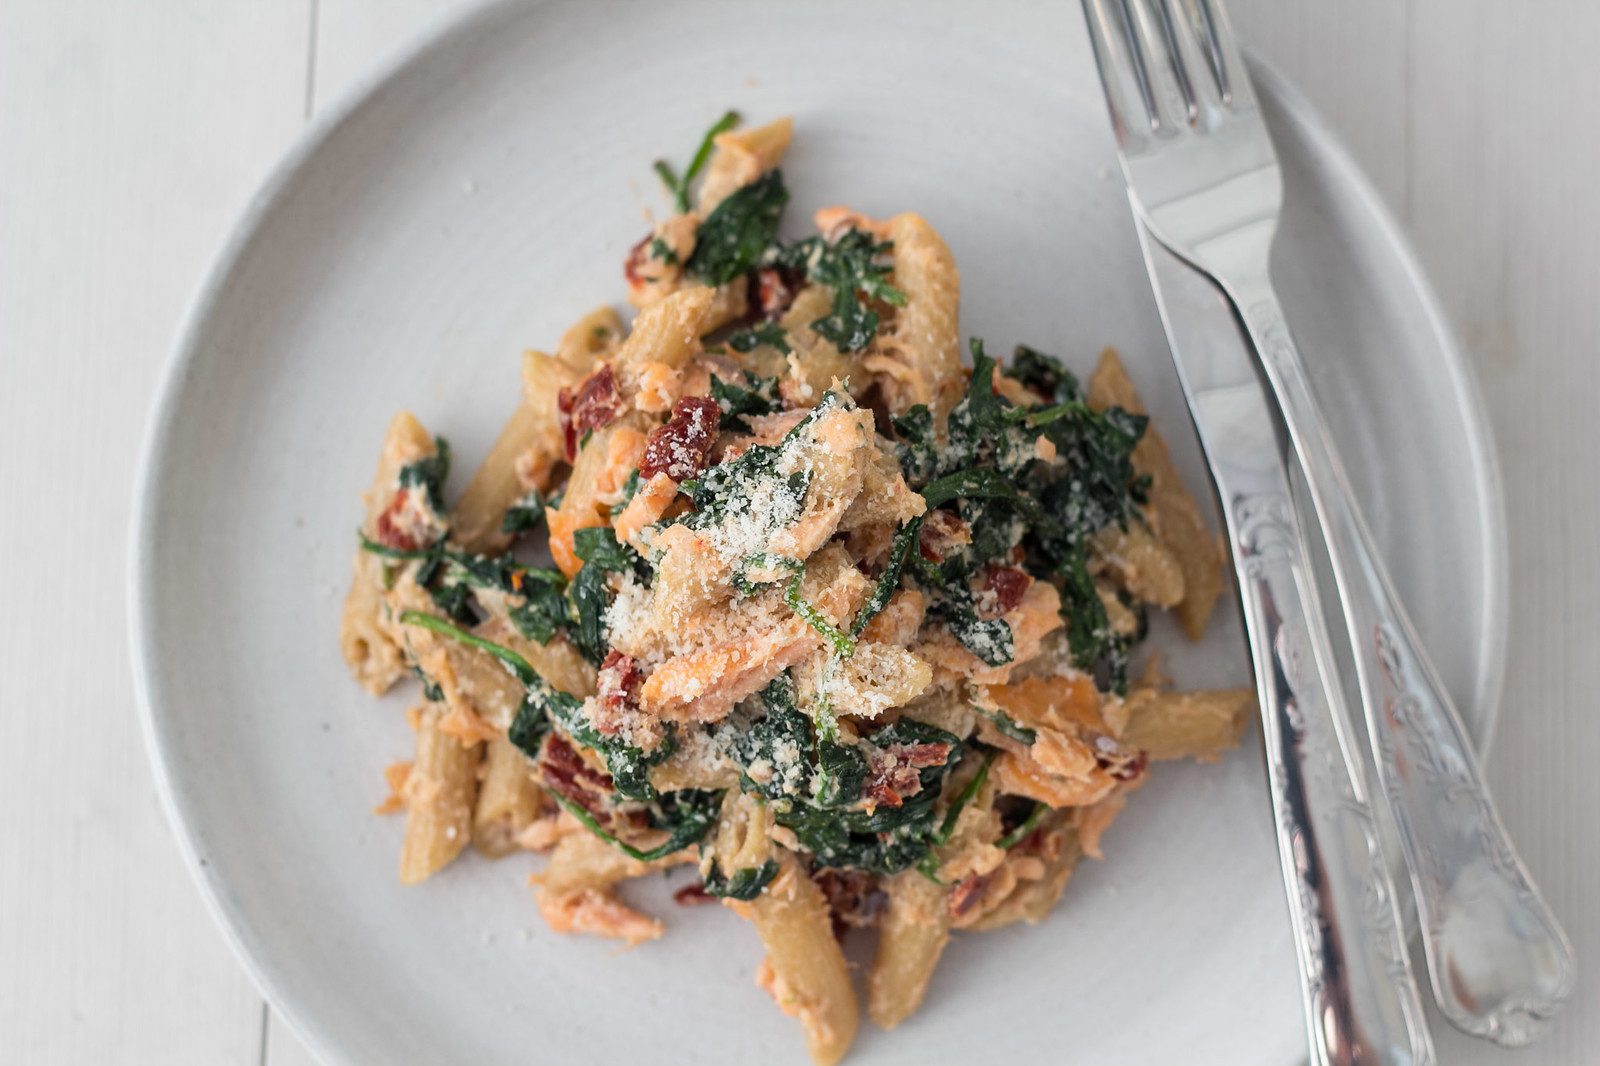 Recipe for Salmon, Spinach and Ricotta Cheese Pasta